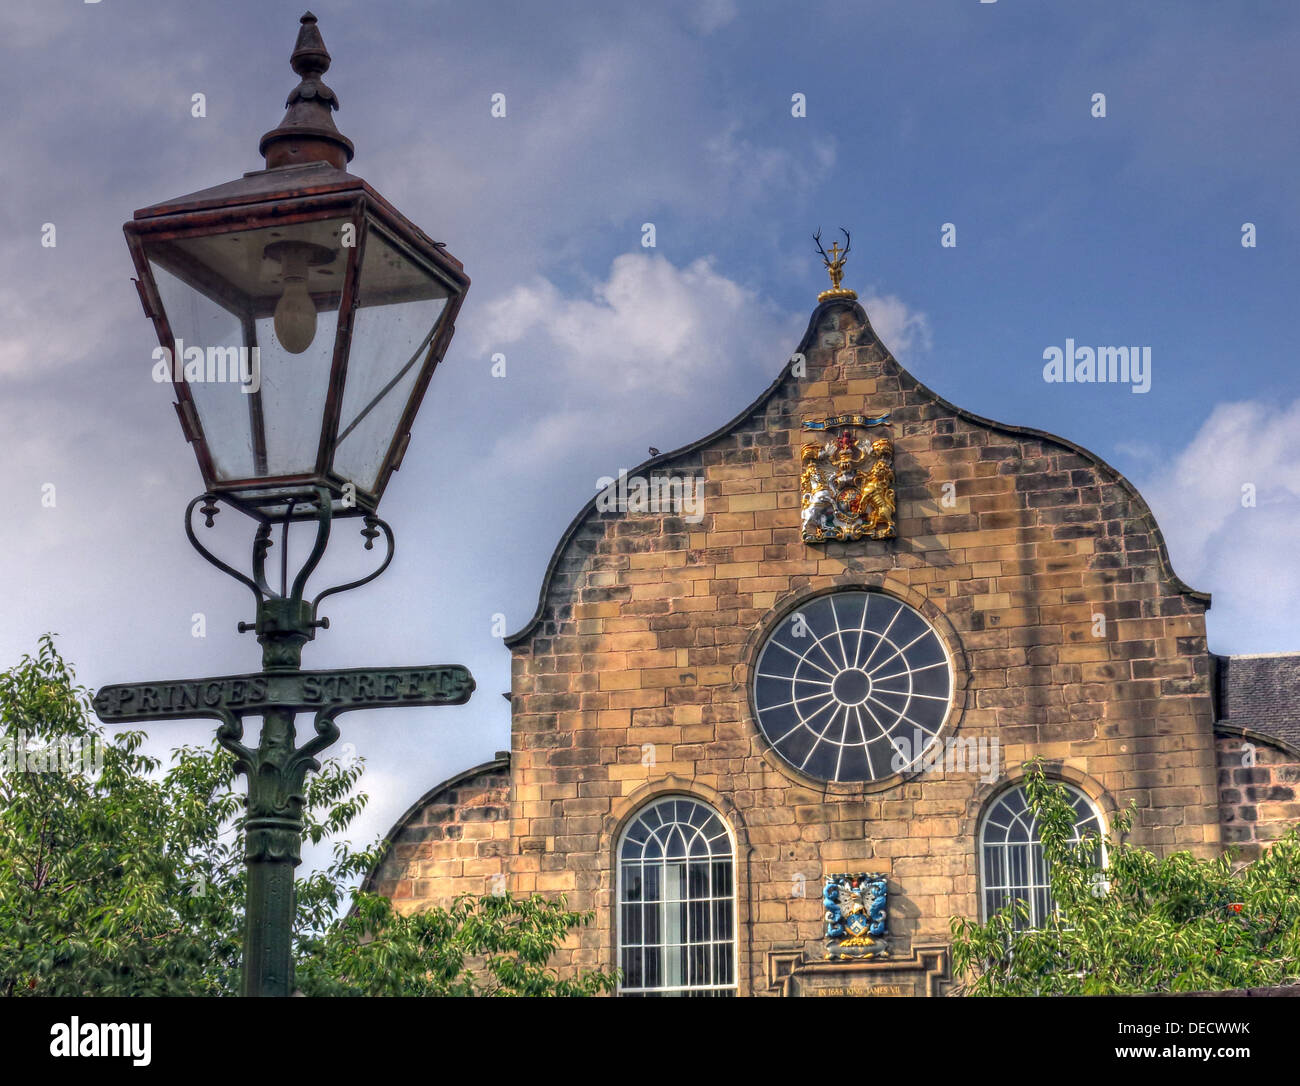 EH8,8BN,EH88BN,exterior,outside,historic,tourist,travel,building,architecture,kirkyard,churchyard,yard,Canon,gate,of,old,town,oldtown,parish,castle,cots,Scottish,scotch,burgh,city,Dutch-style,end,gable,worship,services,Sunday,anglican,religion,religion,Christianity,royal,old,gas,lamp,princes,st,gotonysmith,Palace,of,Holyroodhouse,Holyrood,capital,Dutch,style,small,doric-columned,portico,over,the,entrance,doric,column,columned,Regiment,of,the,British,Army,chapelstreet,oldtown,Ediburgh,Edinburg,Buy Pictures of,Buy Images Of